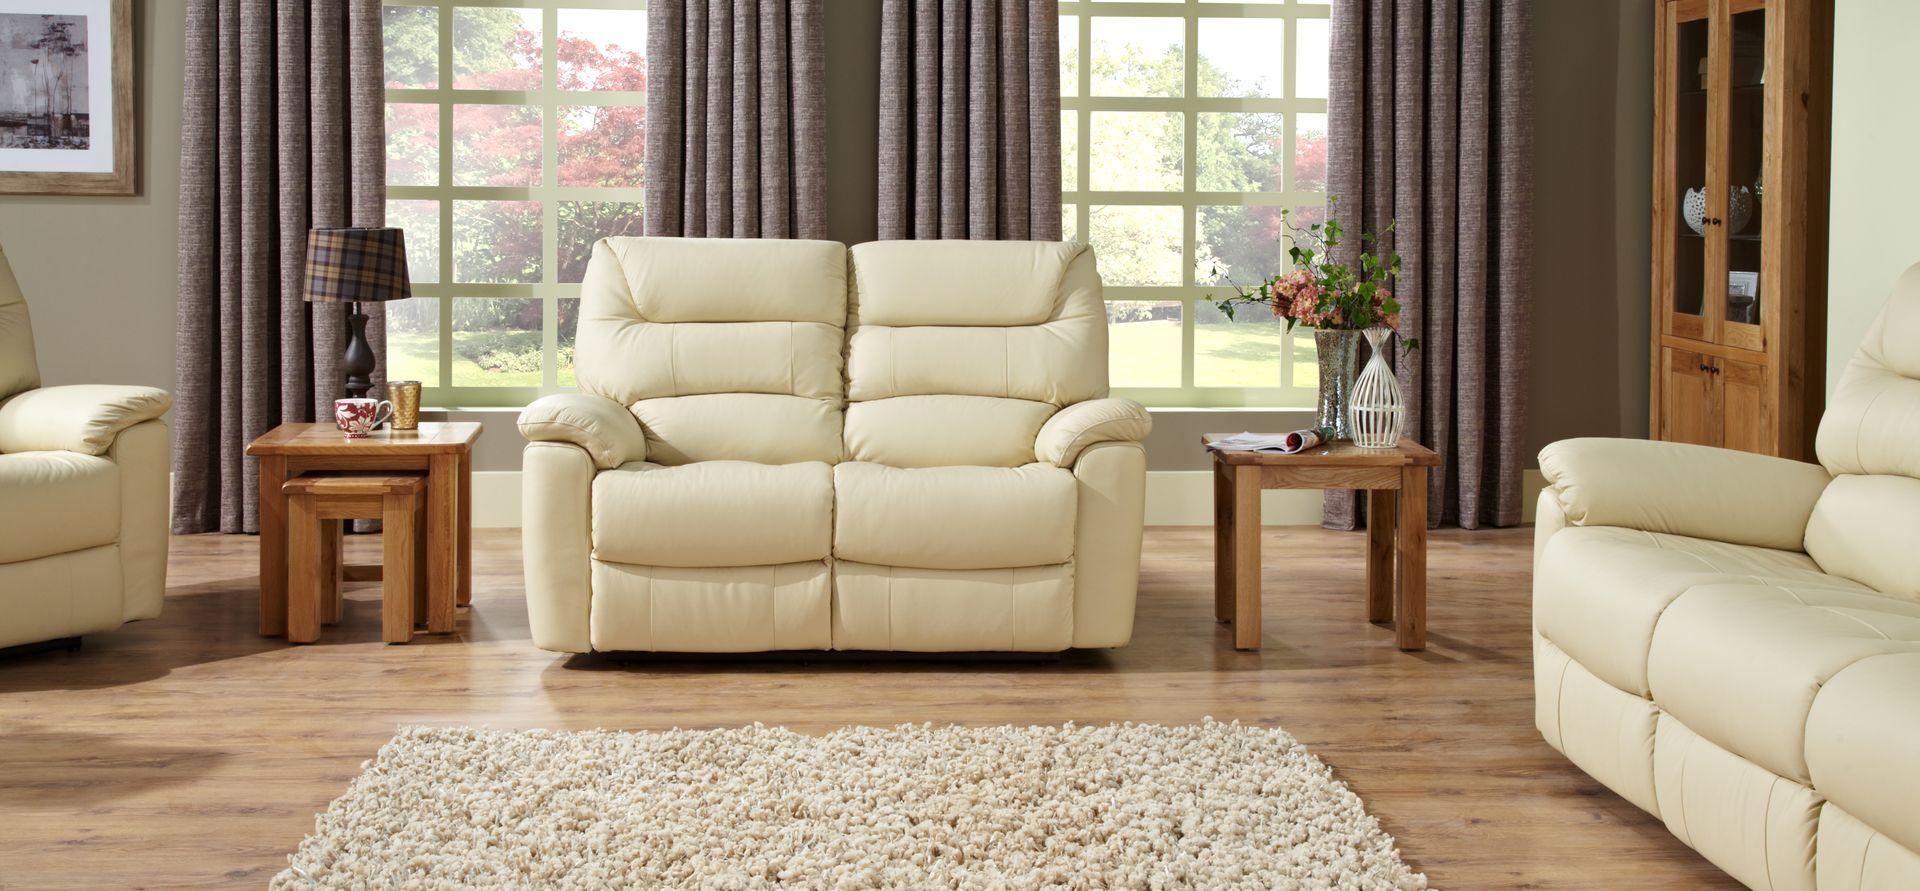 La Z Boy Manhattan 2 Seater Manual Recliner Sofa | Scs Within Lazy Boy Manhattan Sofas (Image 2 of 21)